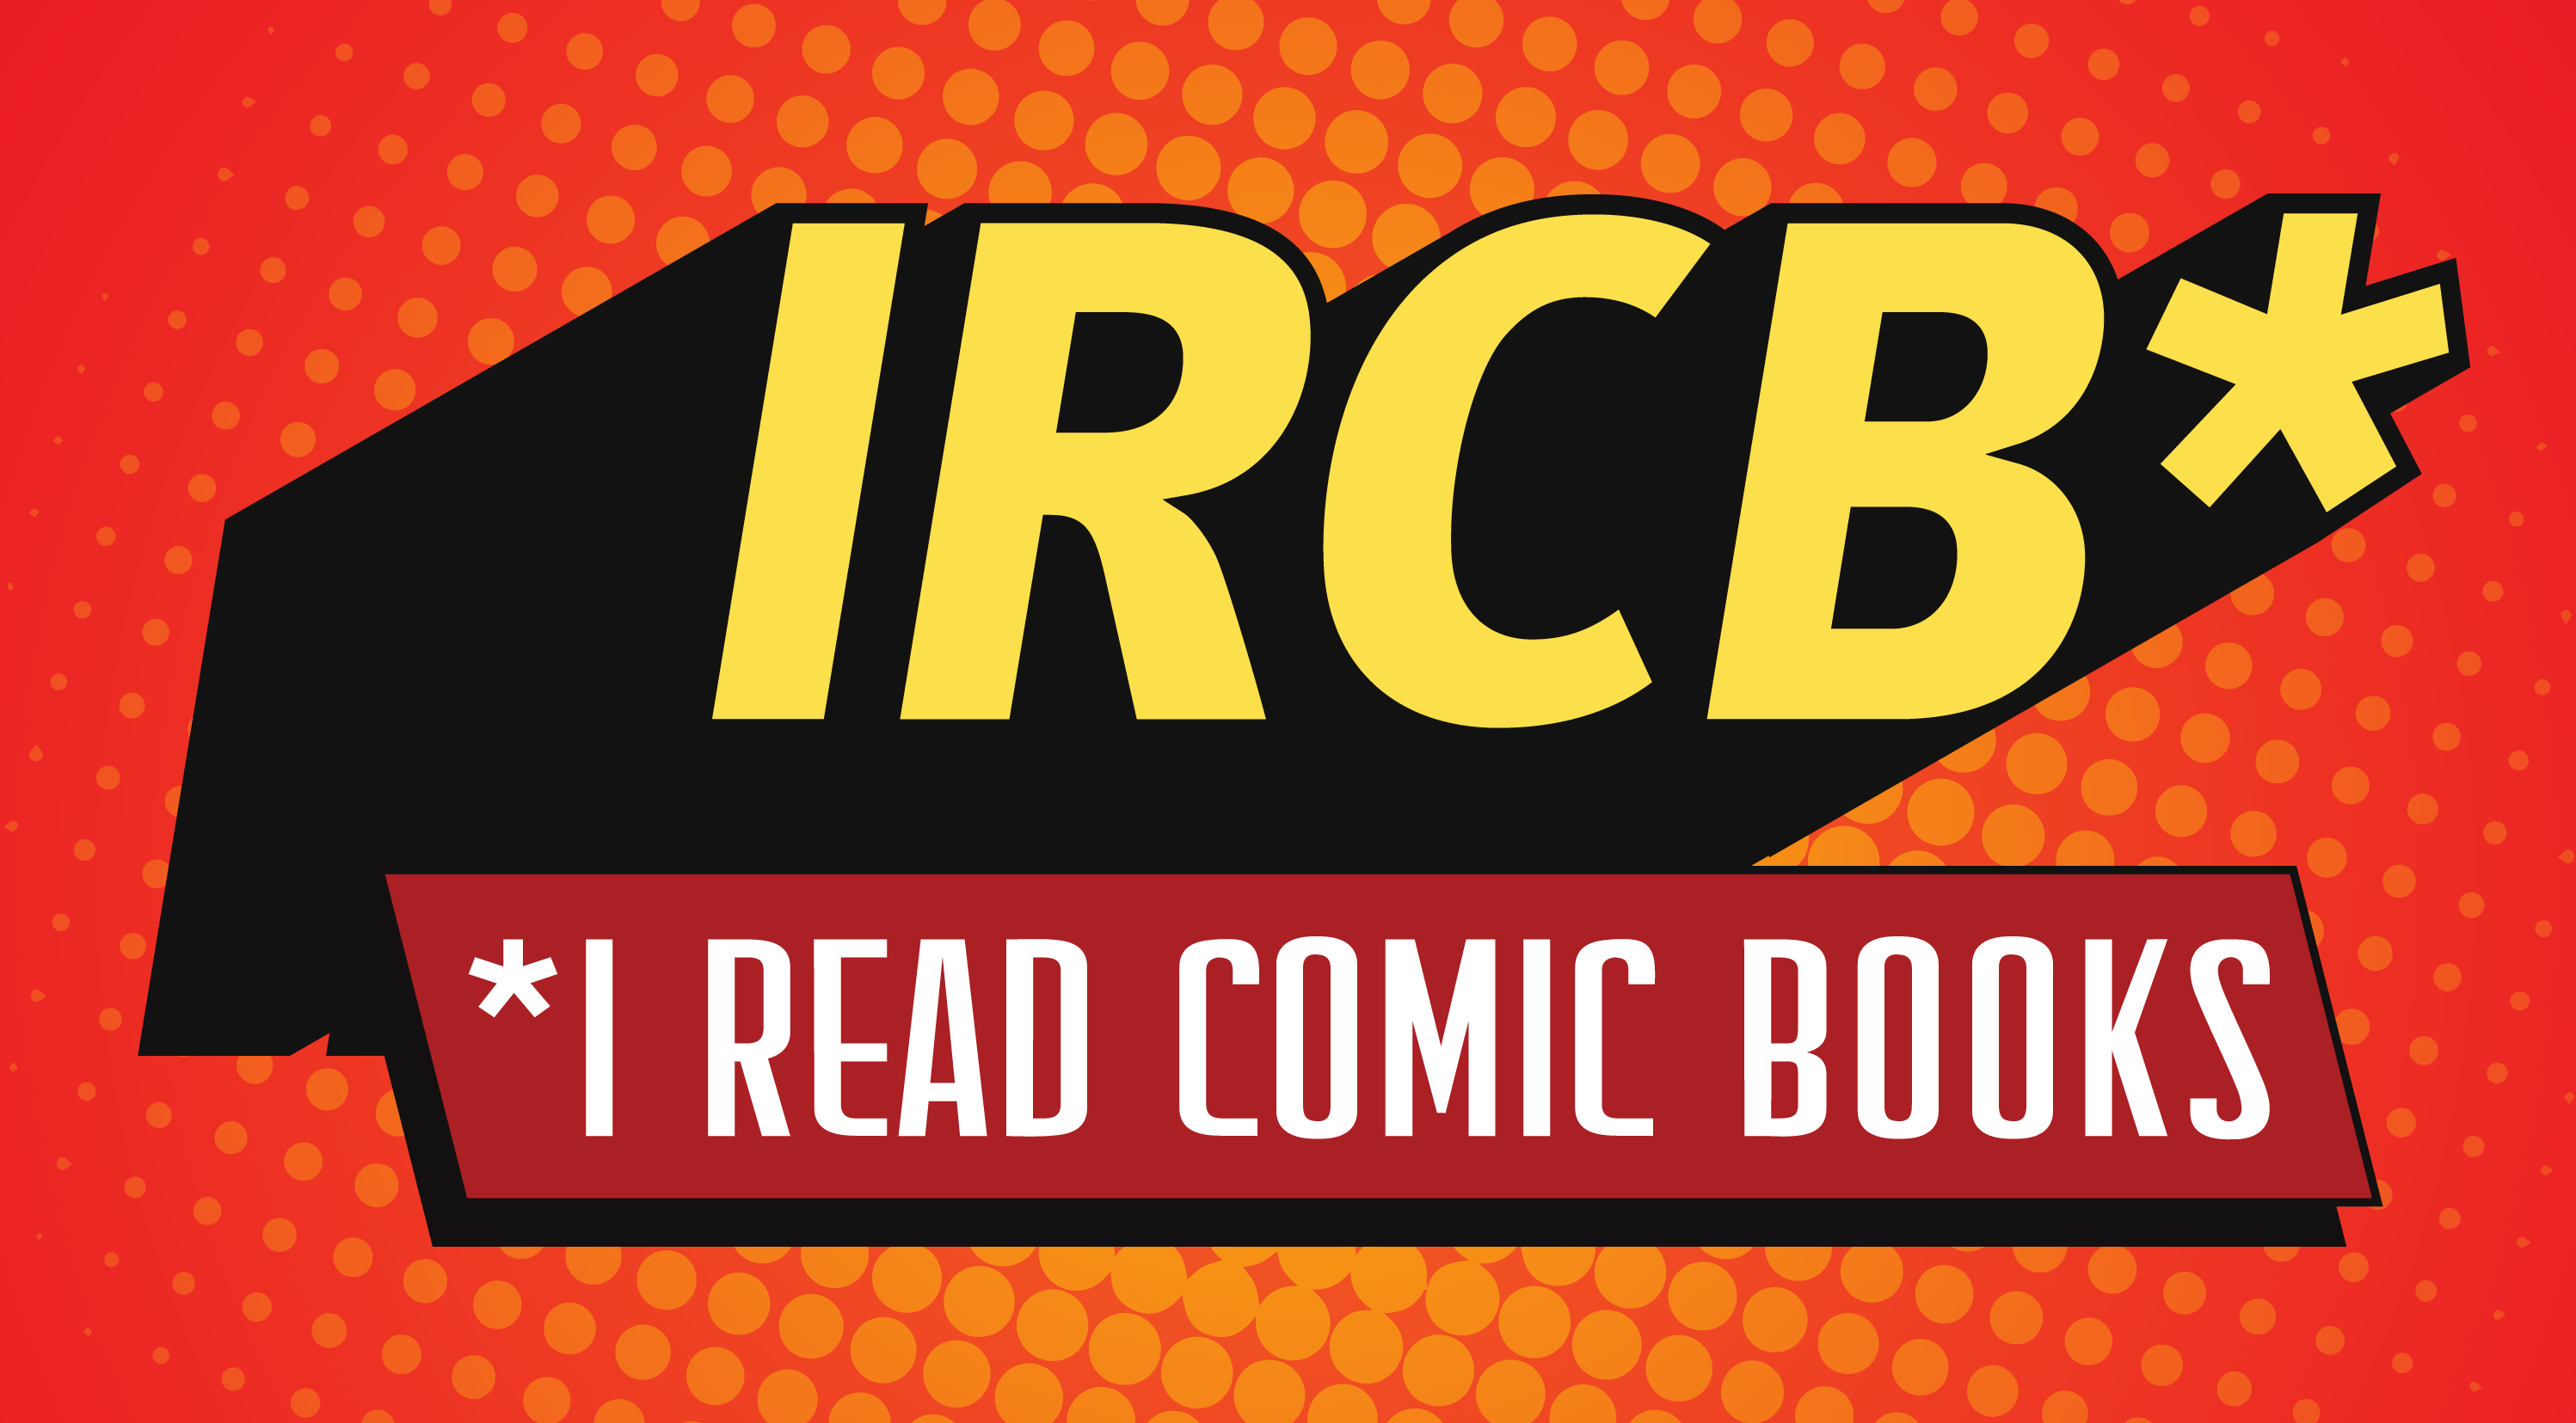 Episode 200 | FCBD + interviews with Lucy Knisley & Box Brown